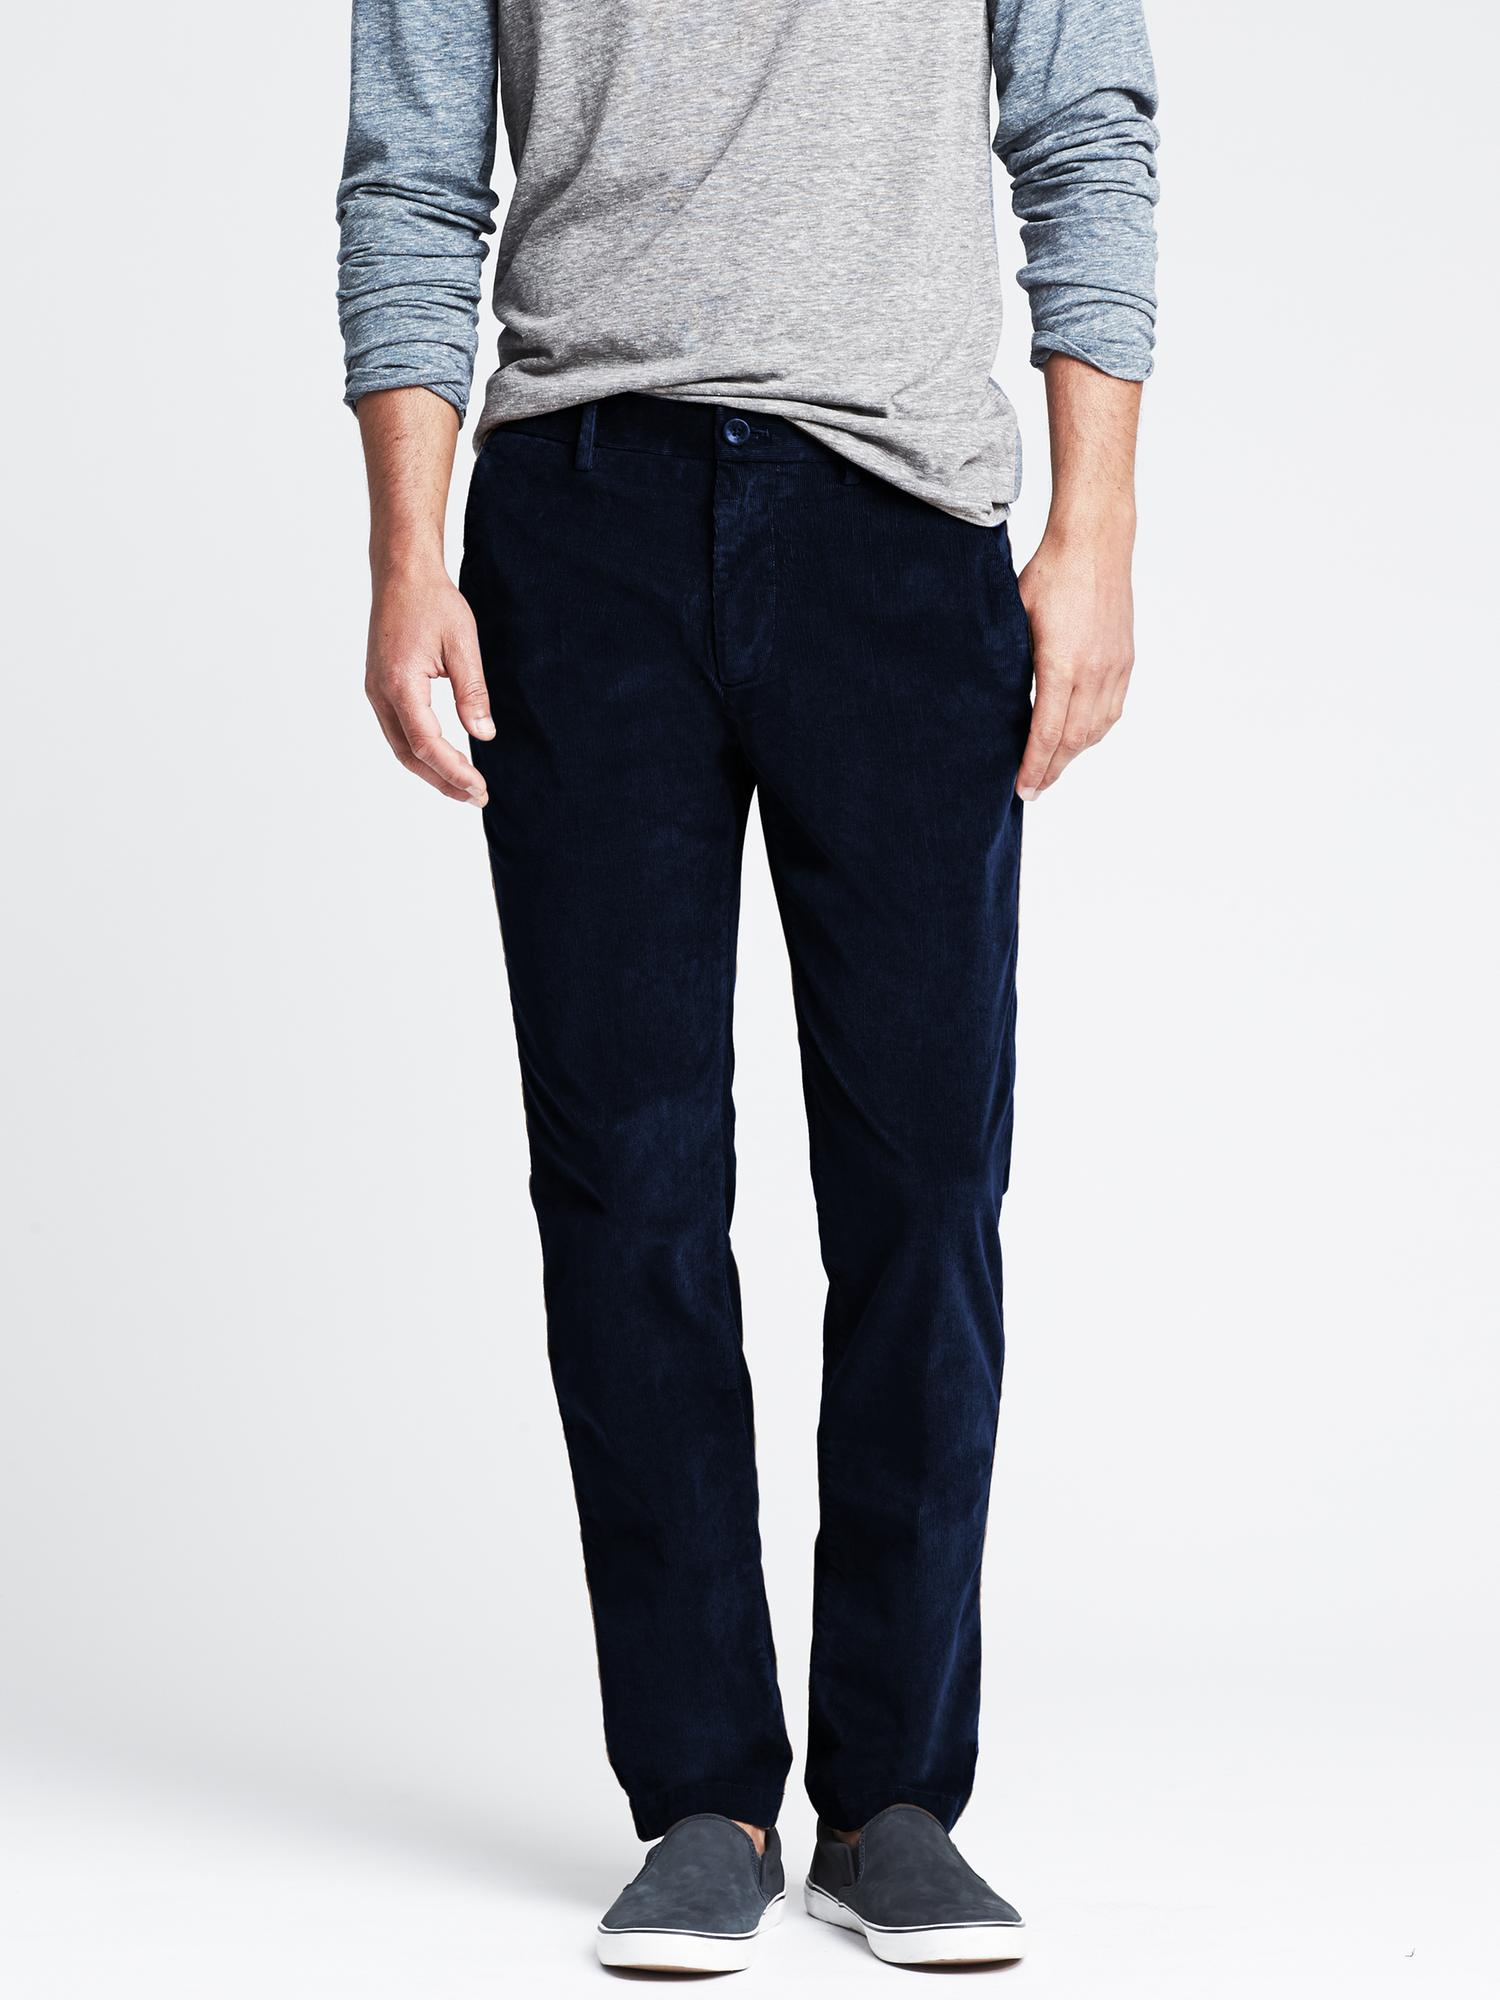 banana republic jean fit guide